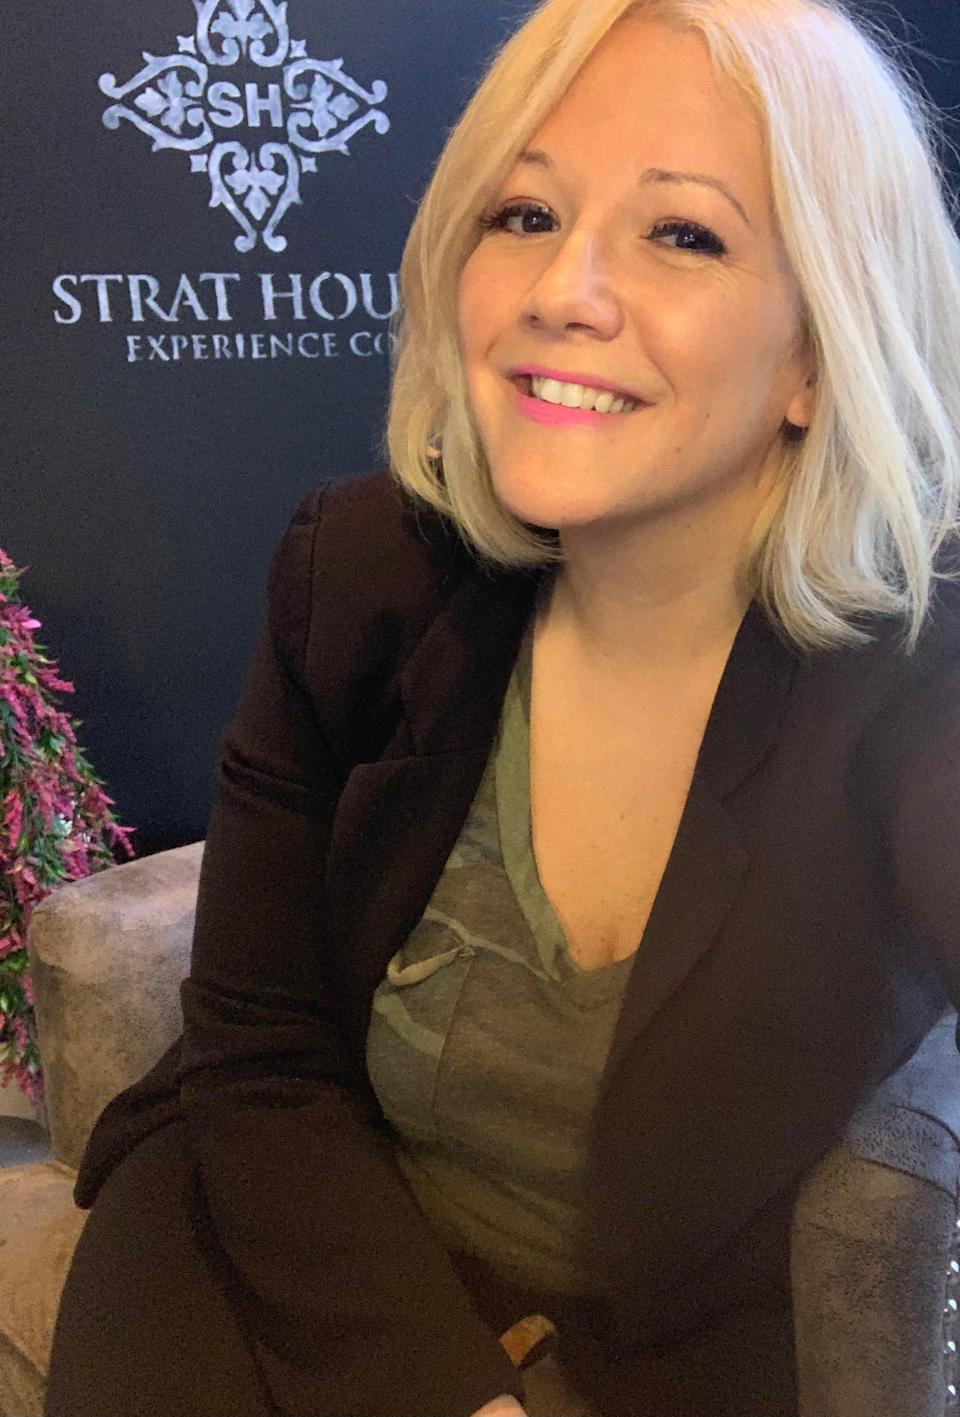 Erin Mills started her own company during the pandemic and decided to open an office in Montclair, New Jersey instead of working from home.